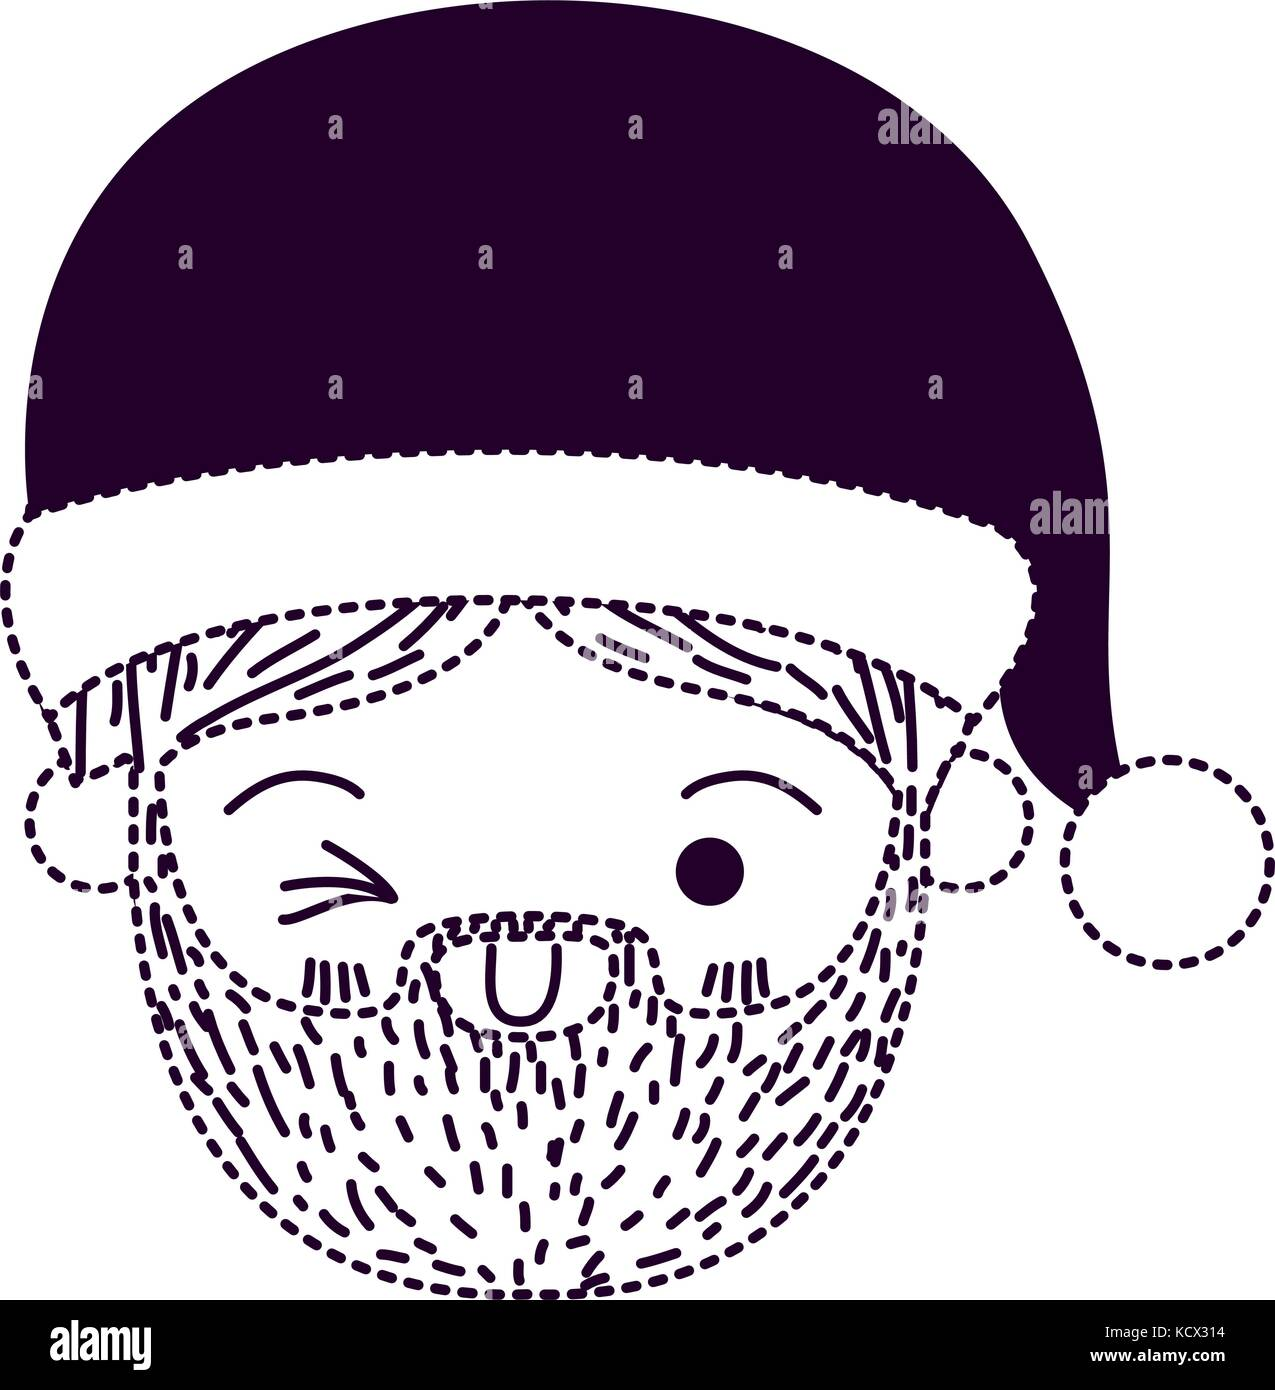 santa claus man kawaii face wink eye expression with hat on dotted rh alamy com Moving Winking Eyes Clip Art Winking Eye Drawing